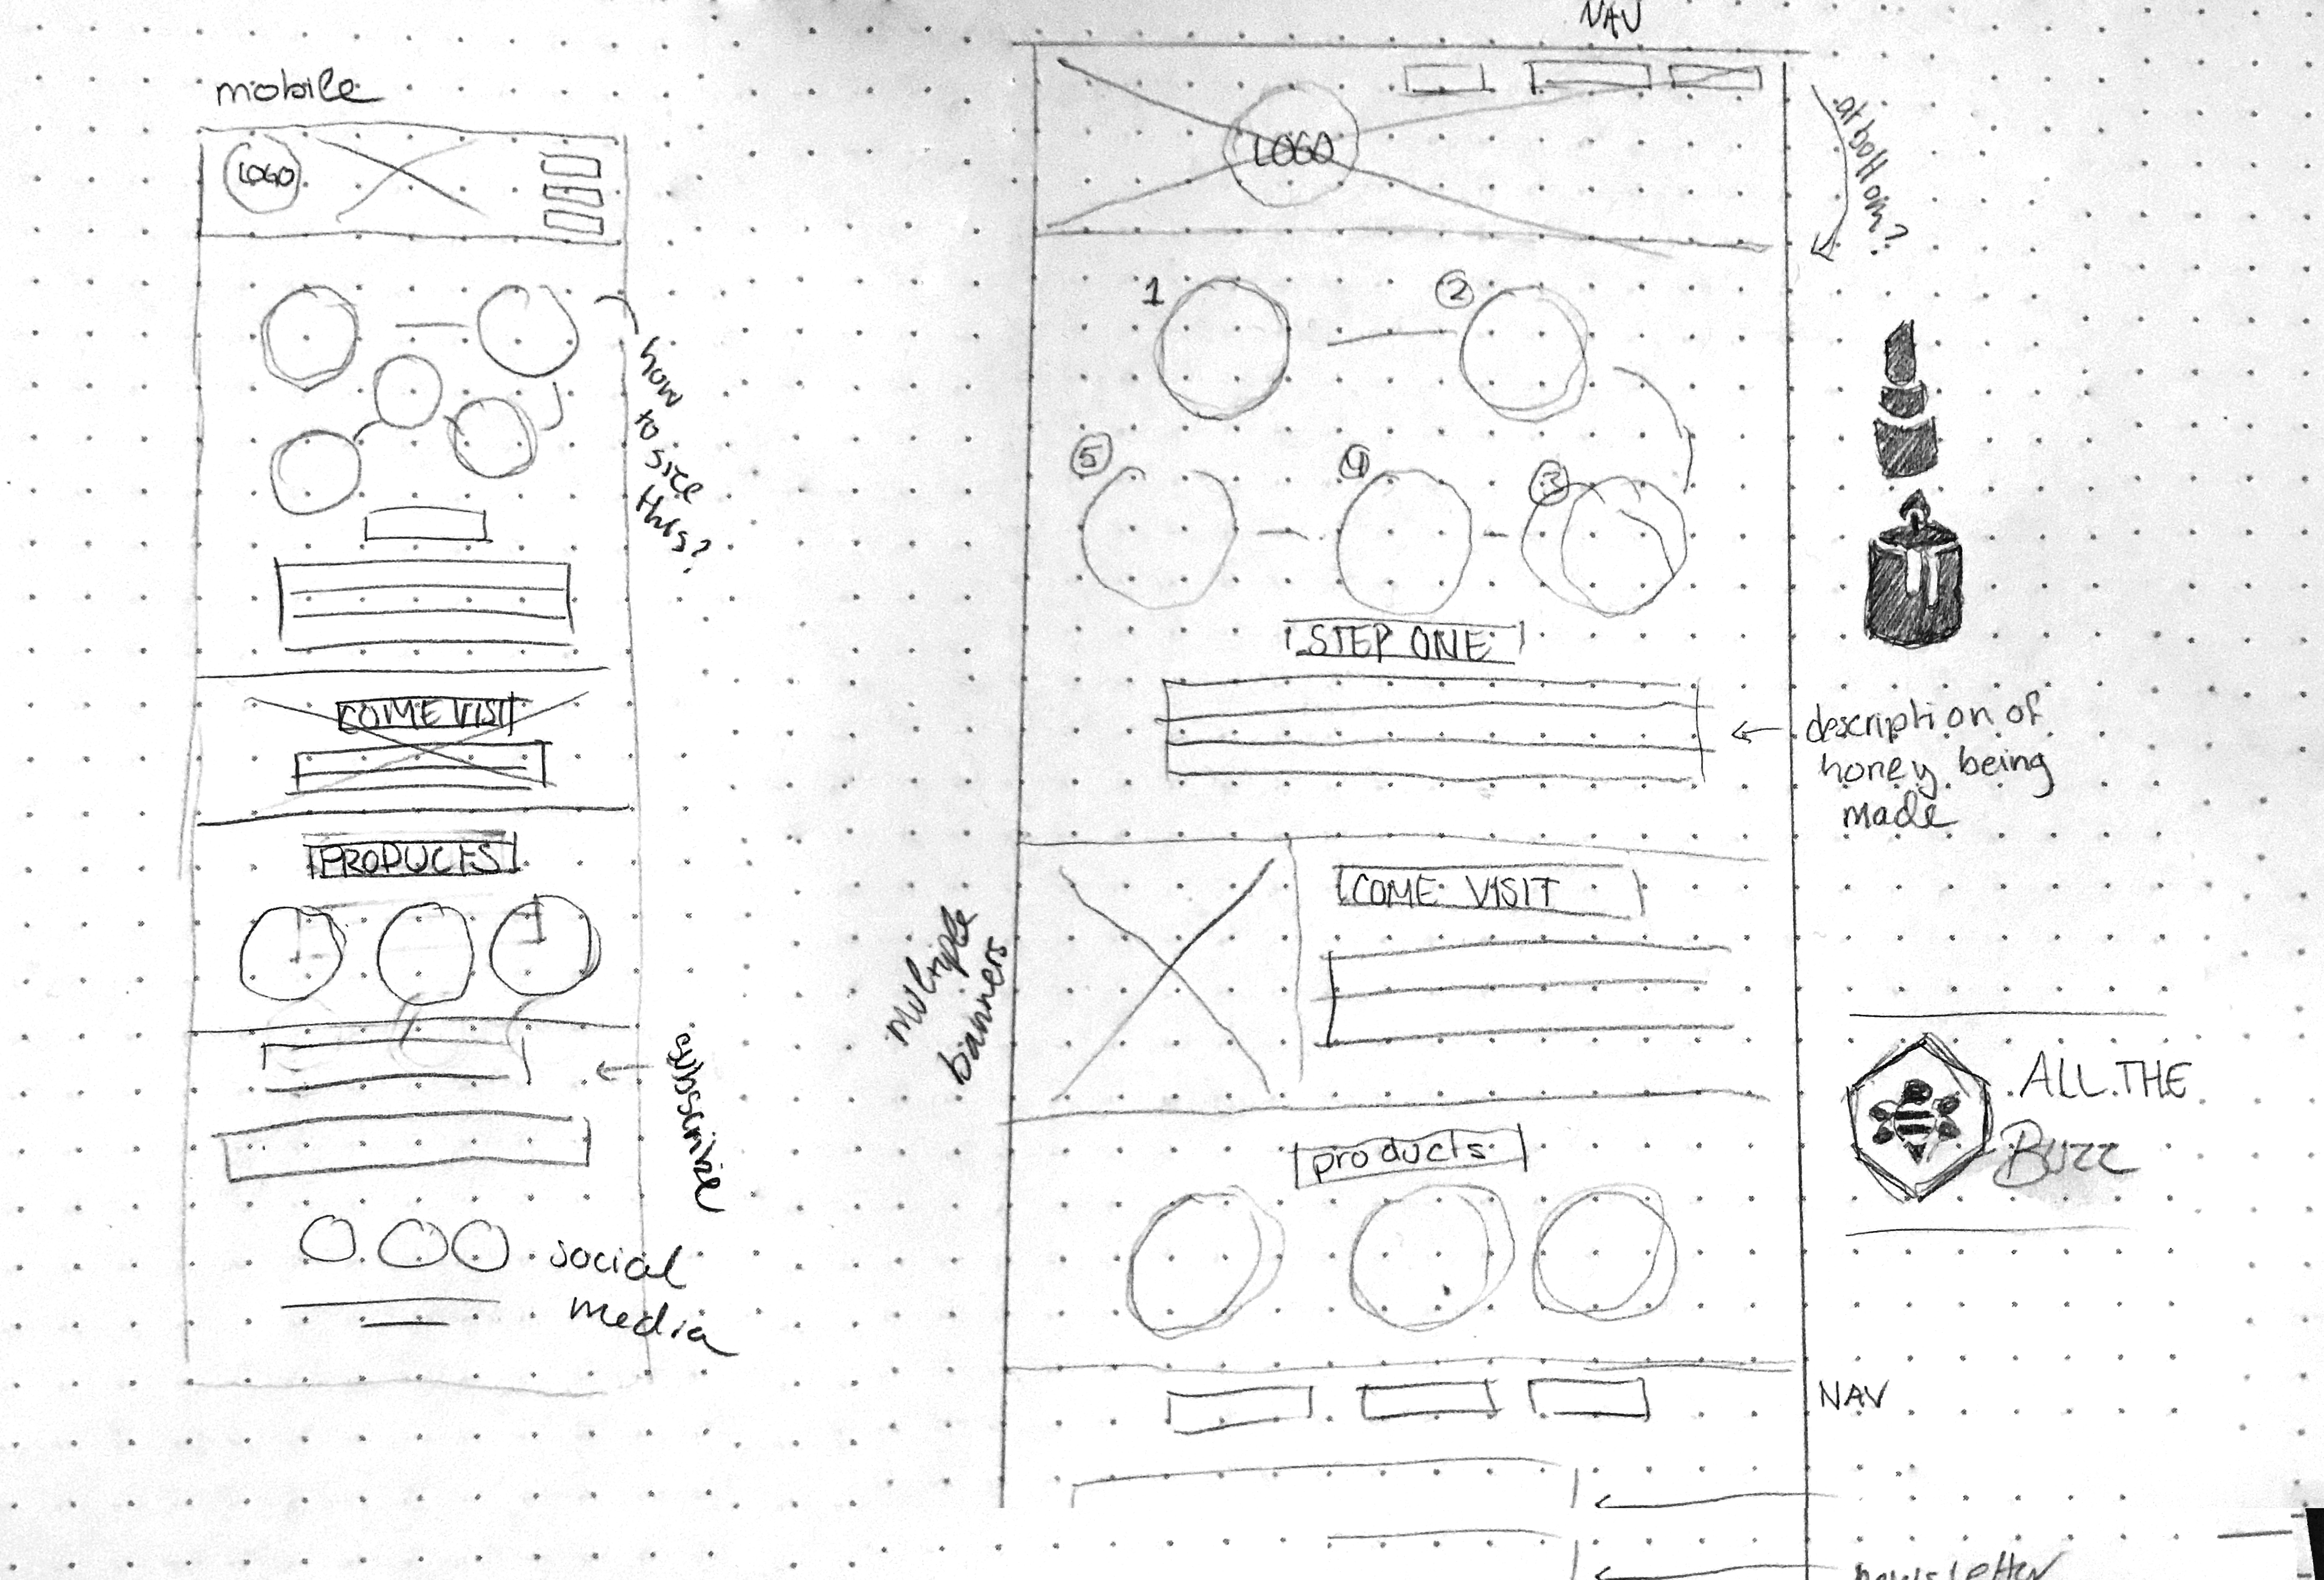 all the buzz web sketches